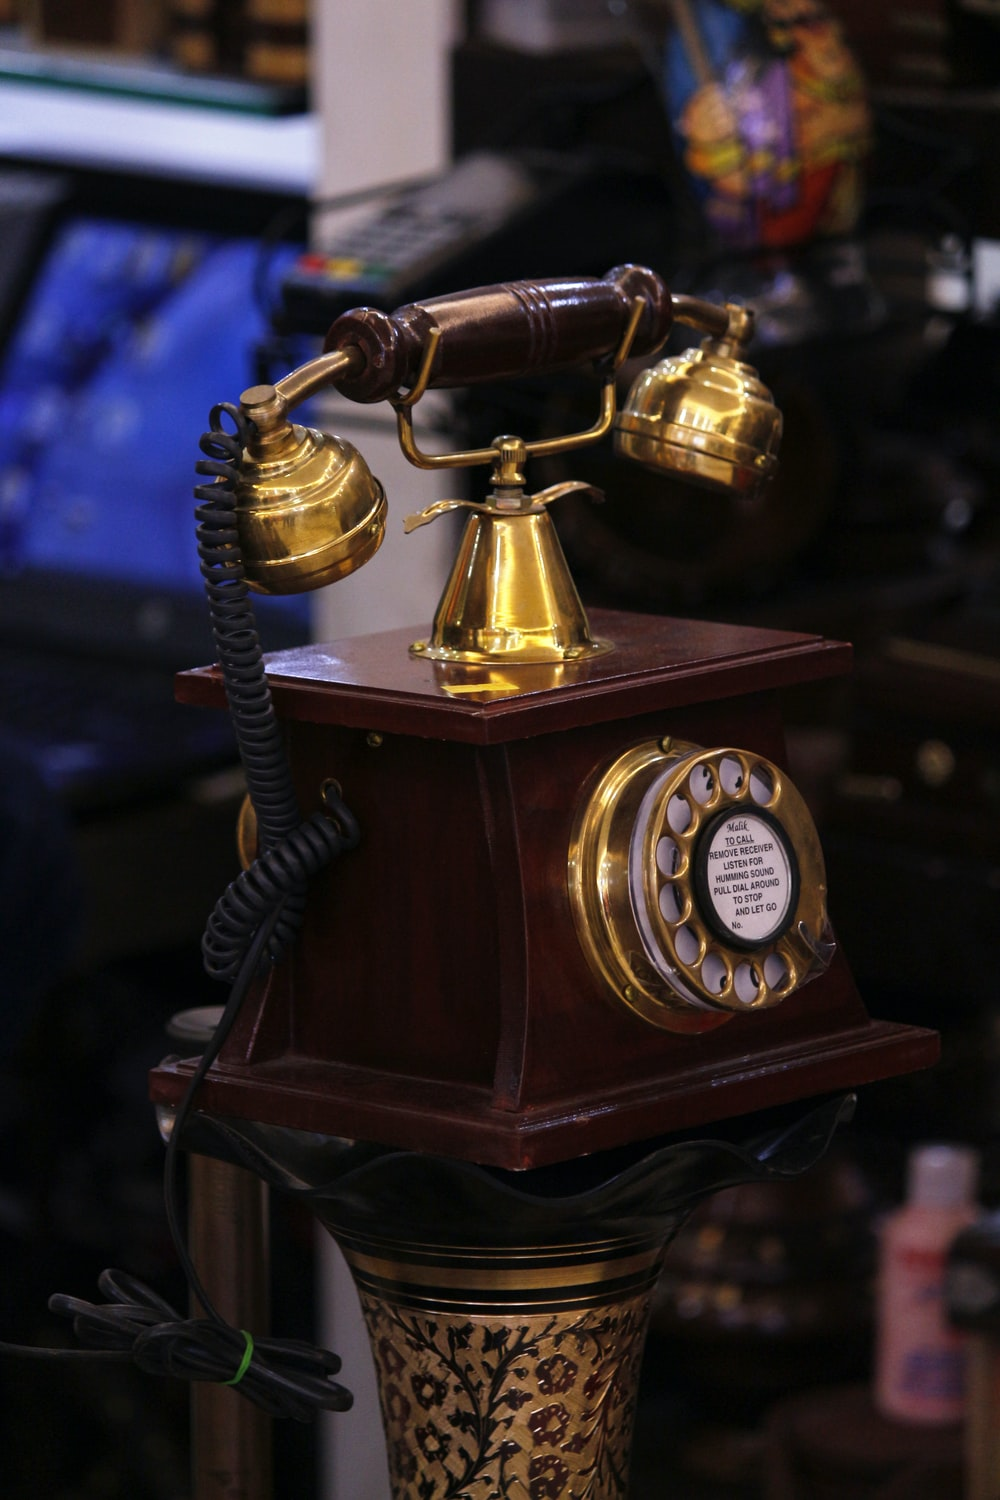 Antique Telephone | HD photo by Nandhu Kumar